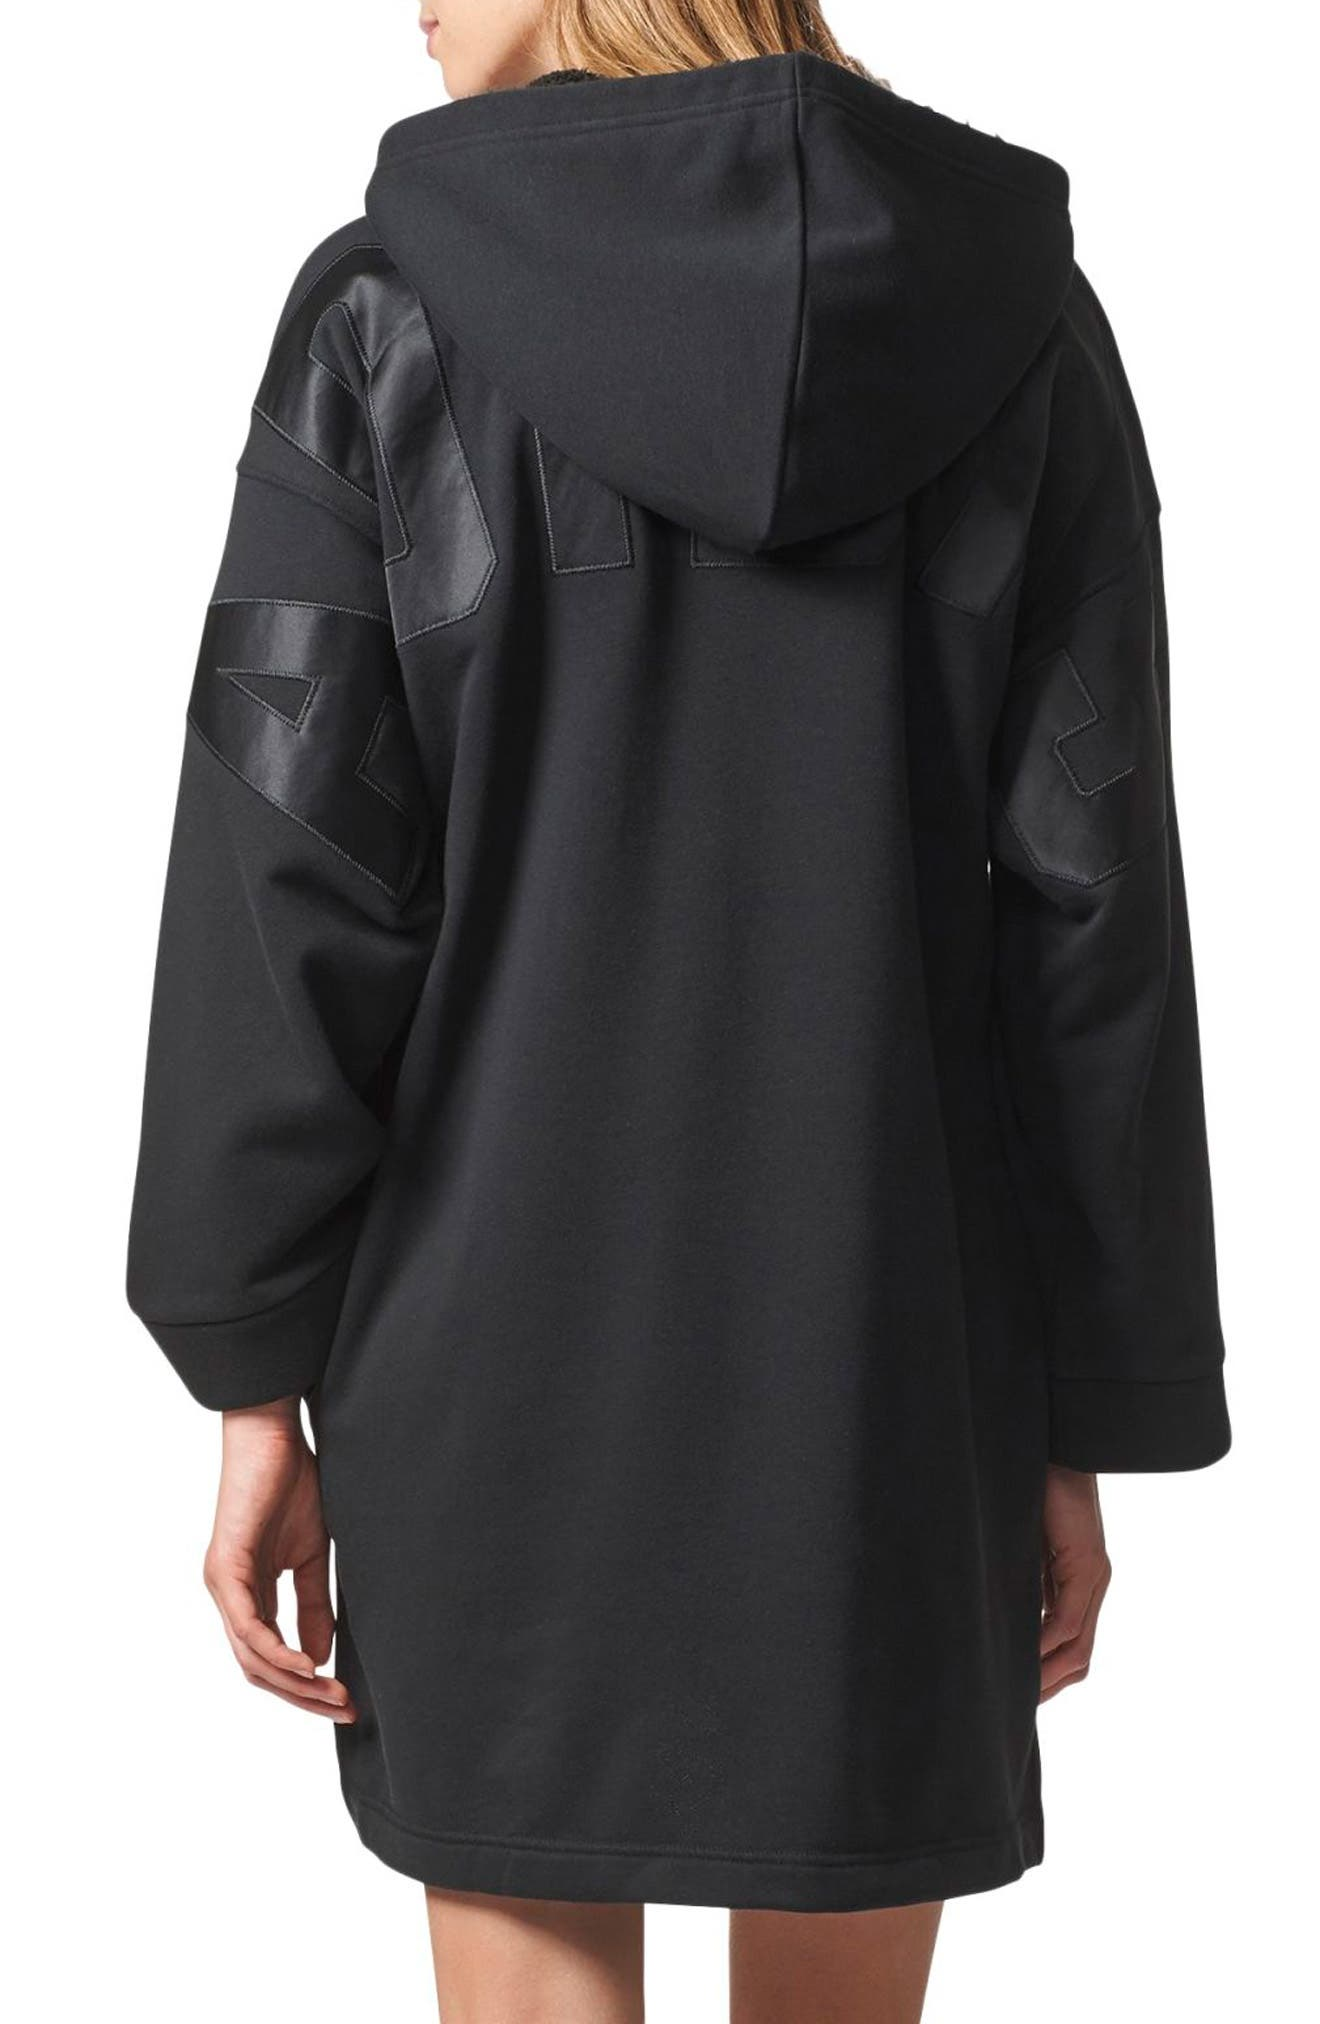 Originals Hooded French Terry Dress,                             Alternate thumbnail 2, color,